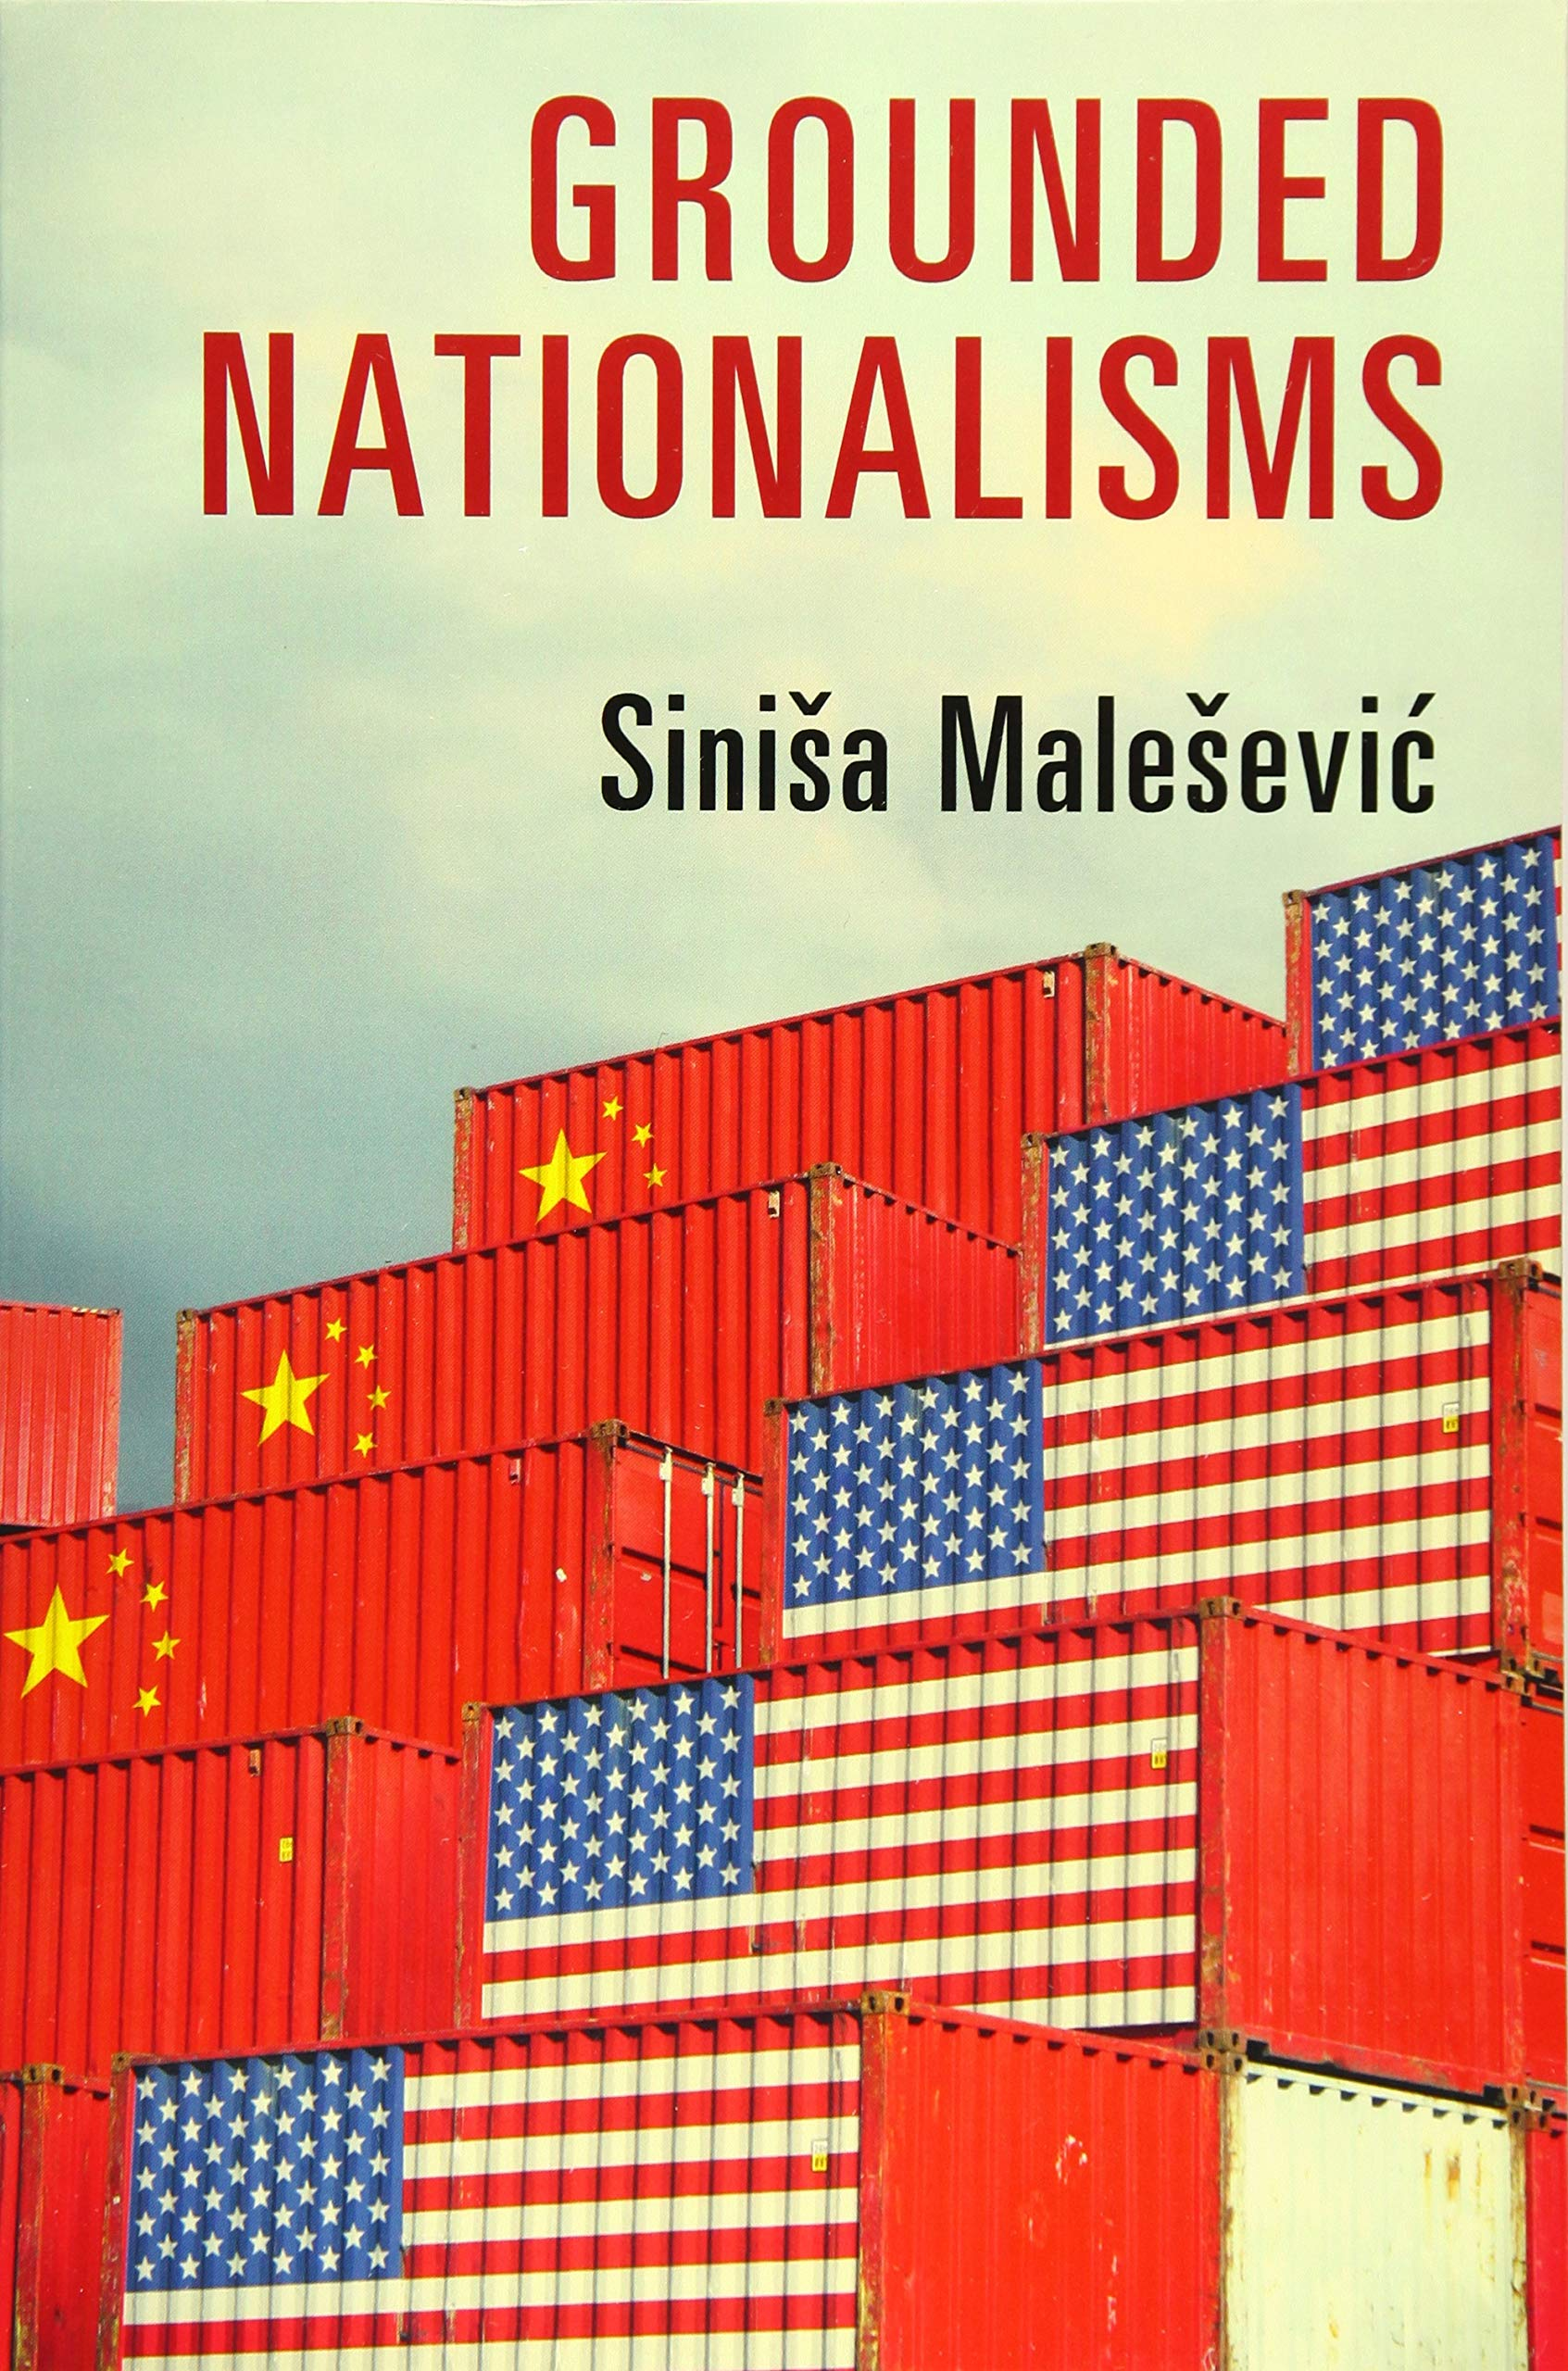 Grounded Nationalisms: A Sociological Analysis: Amazon.co.uk: Malešević,  Siniša: 9781108441247: Books